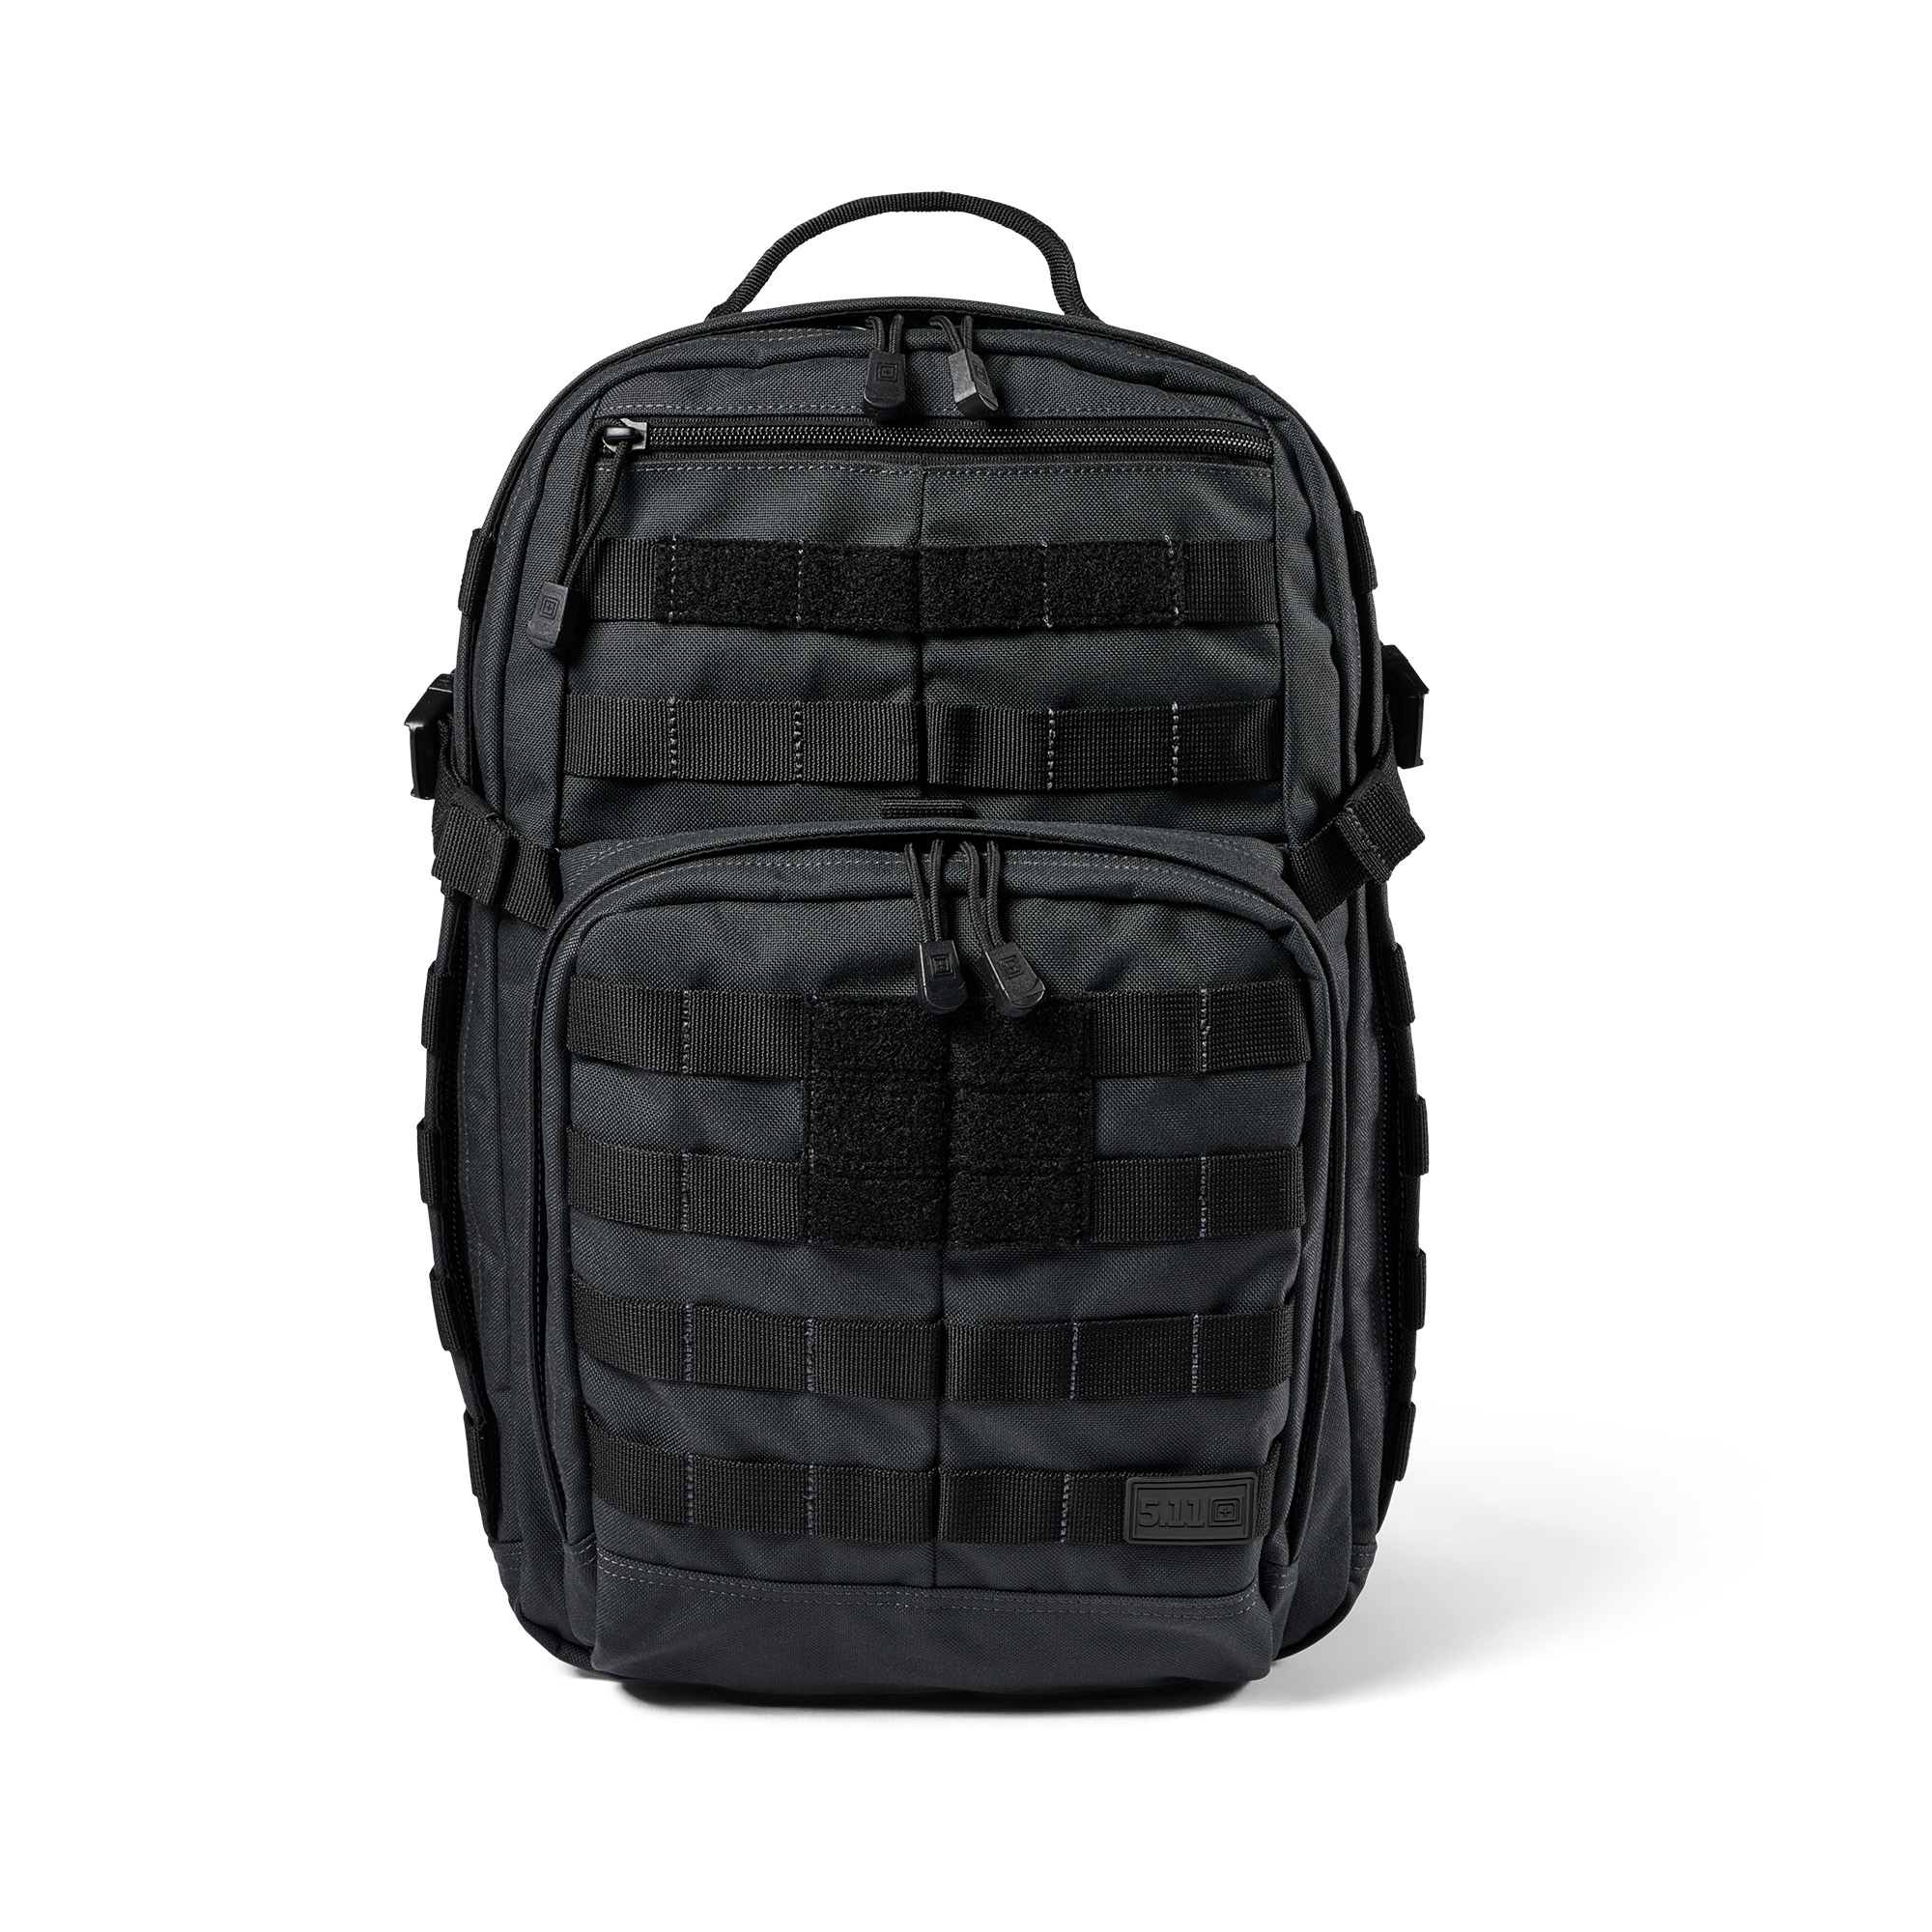 Balo 5.11 Tactical Rush 12 2.0 - Double Tap